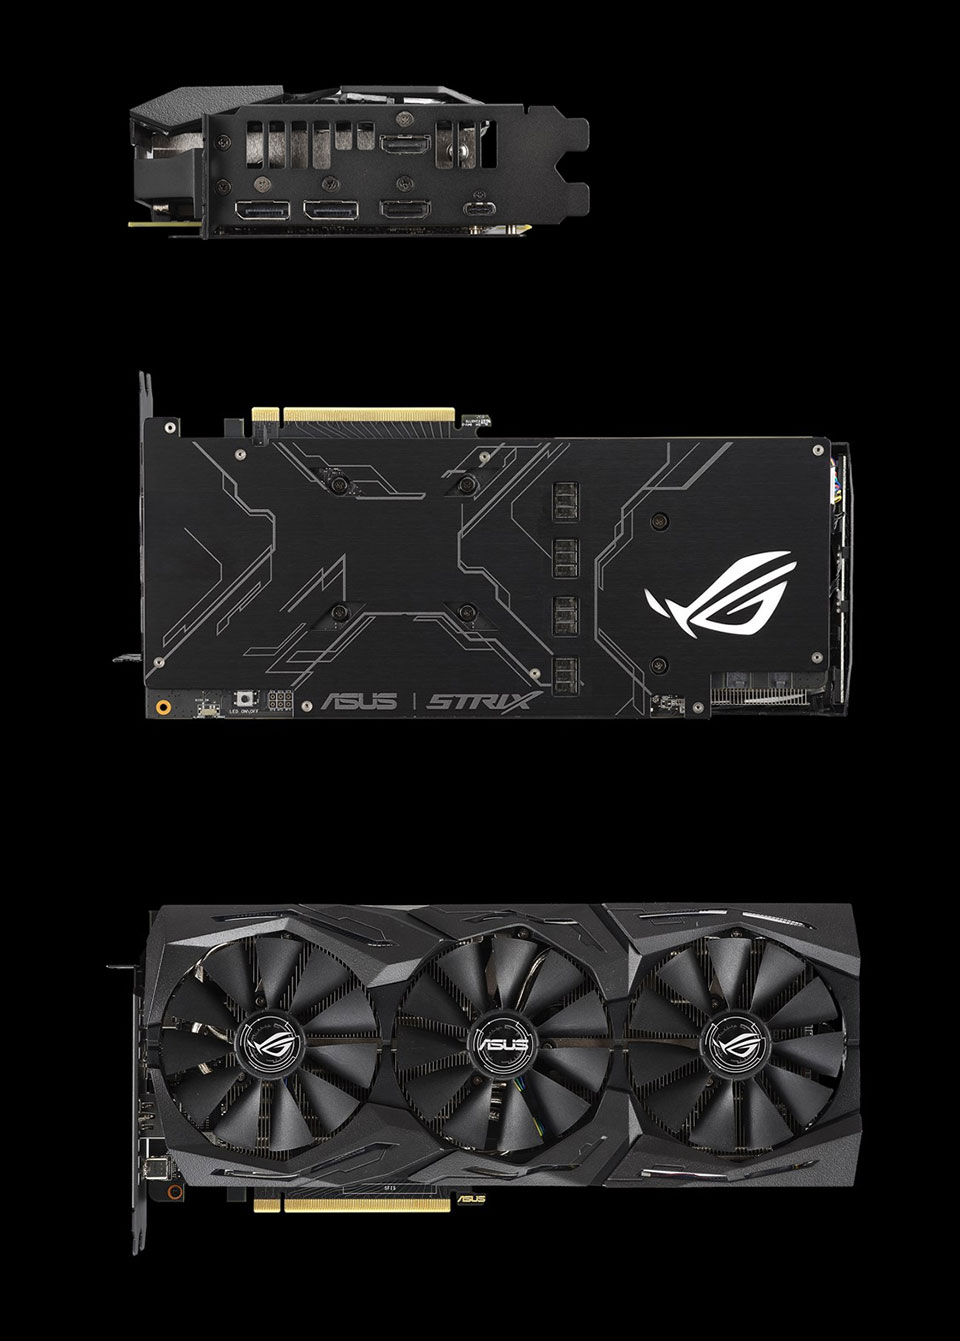 ASUS ROG Strix GeForce RTX 2070 Gaming OC 8GB